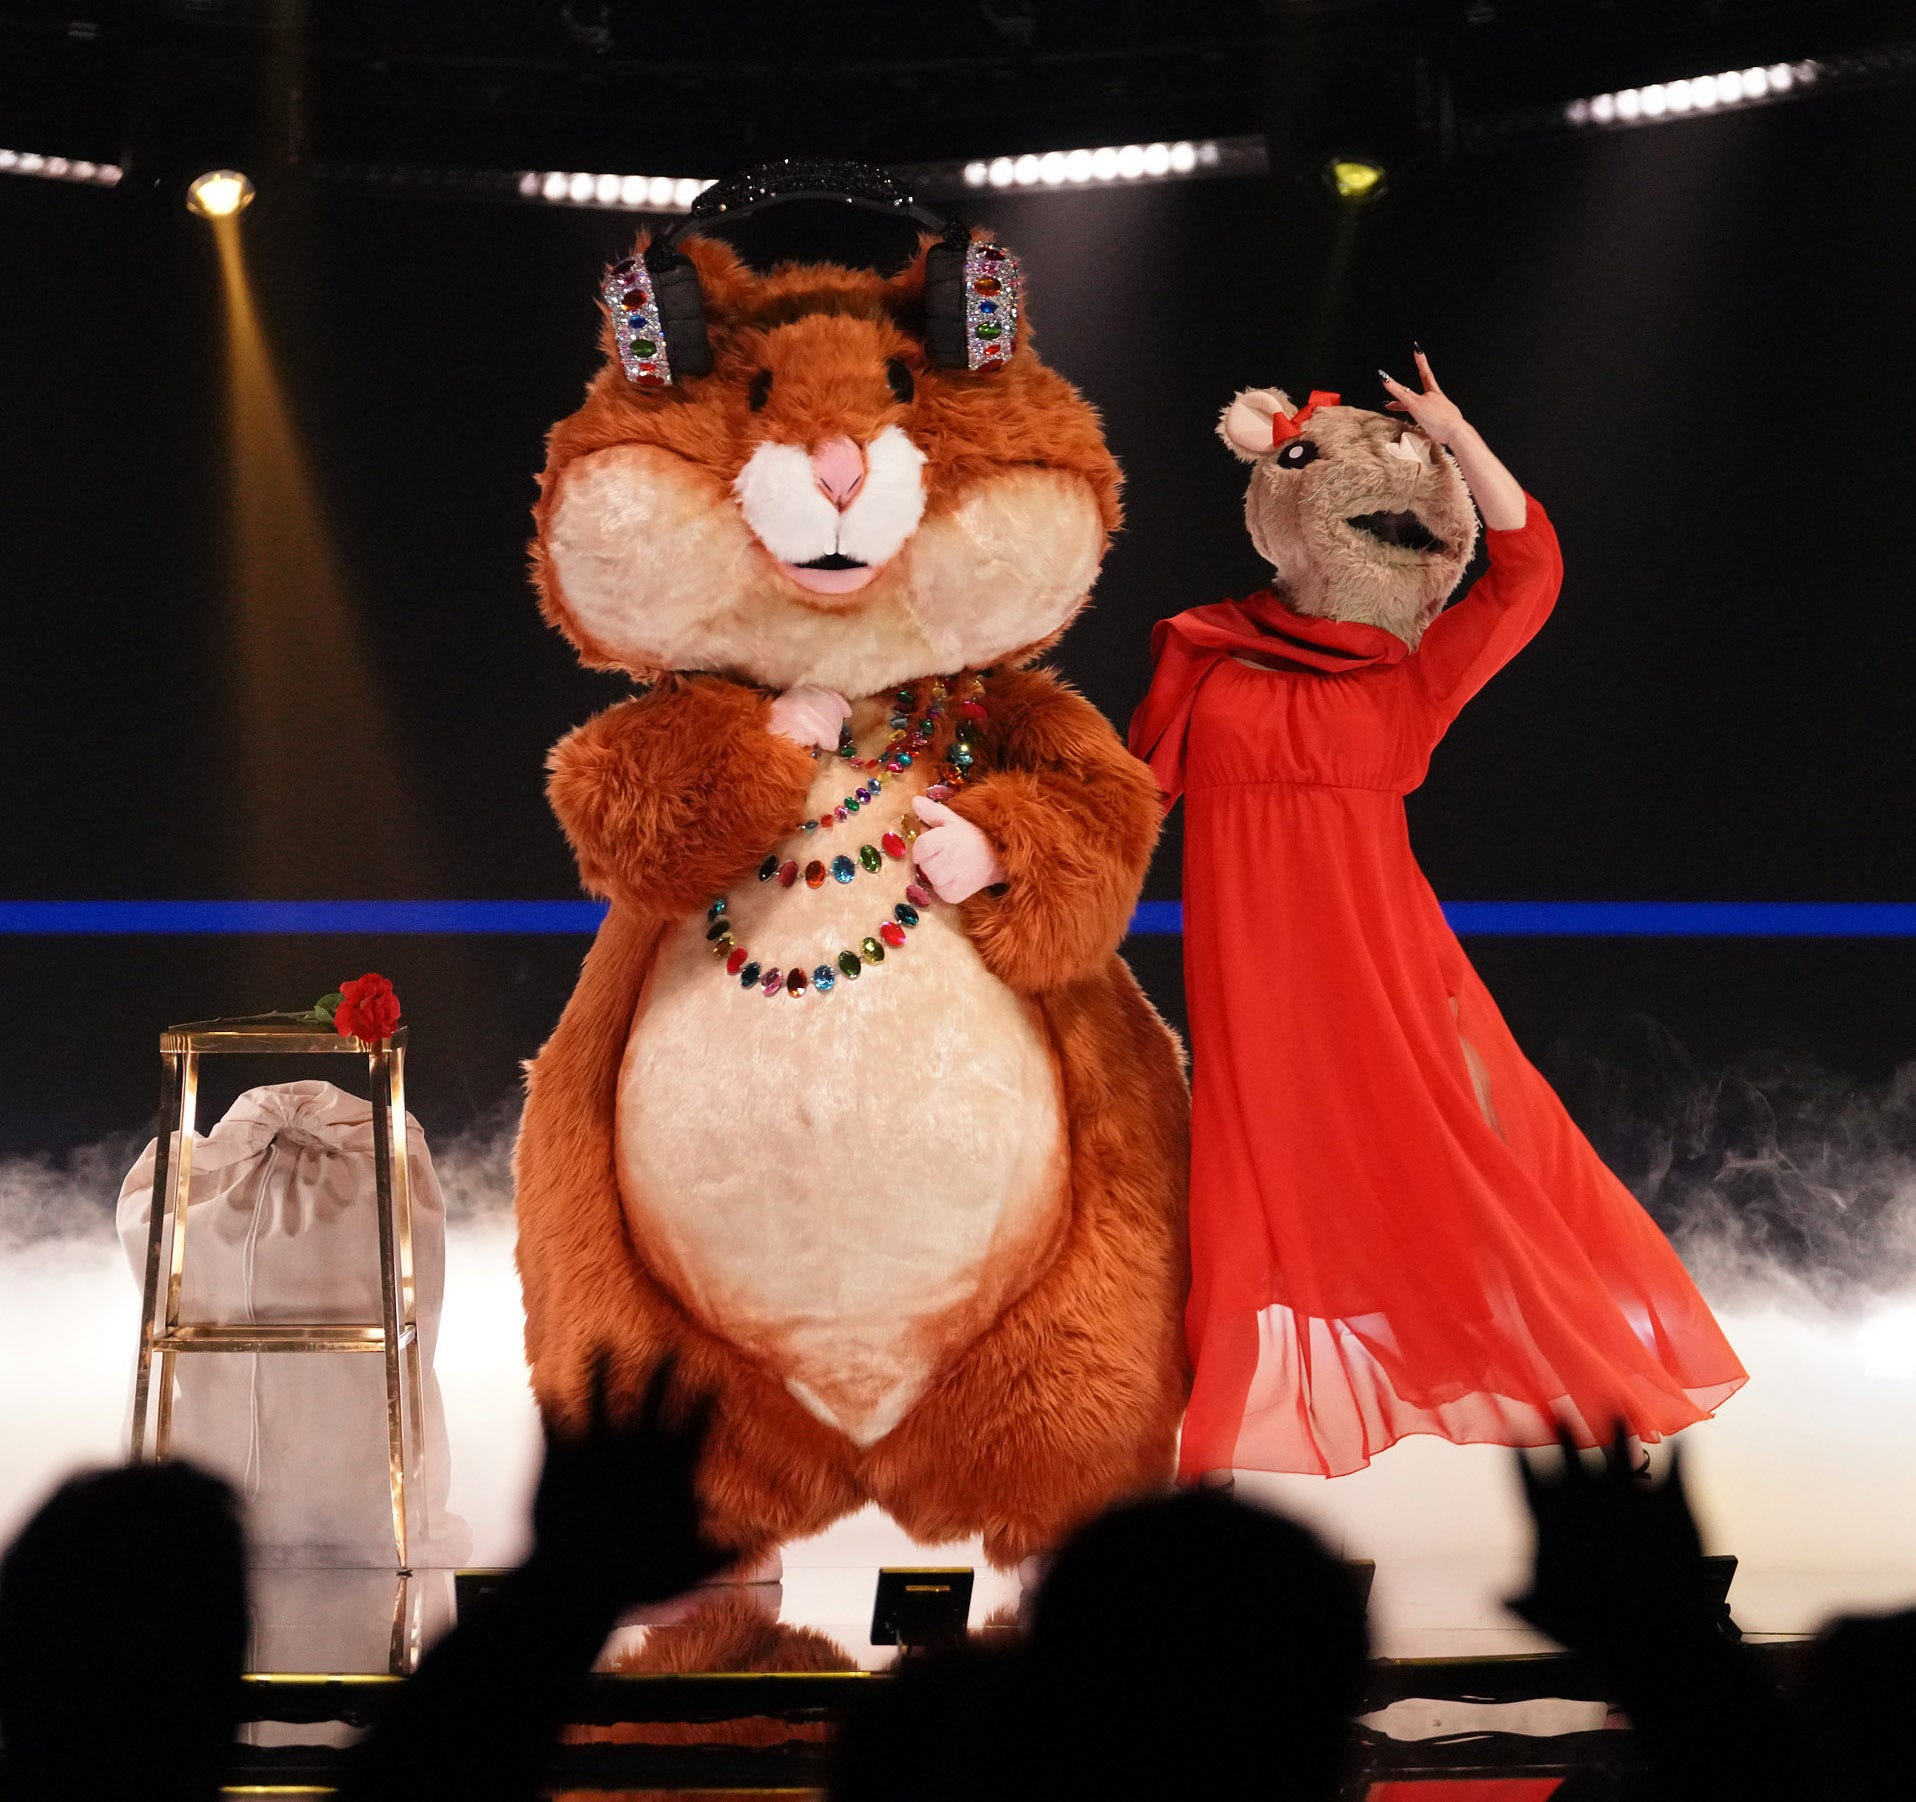 The Masked Singer : Hamster runs off his wheel. Wildcard Jester makes eerie costume debut